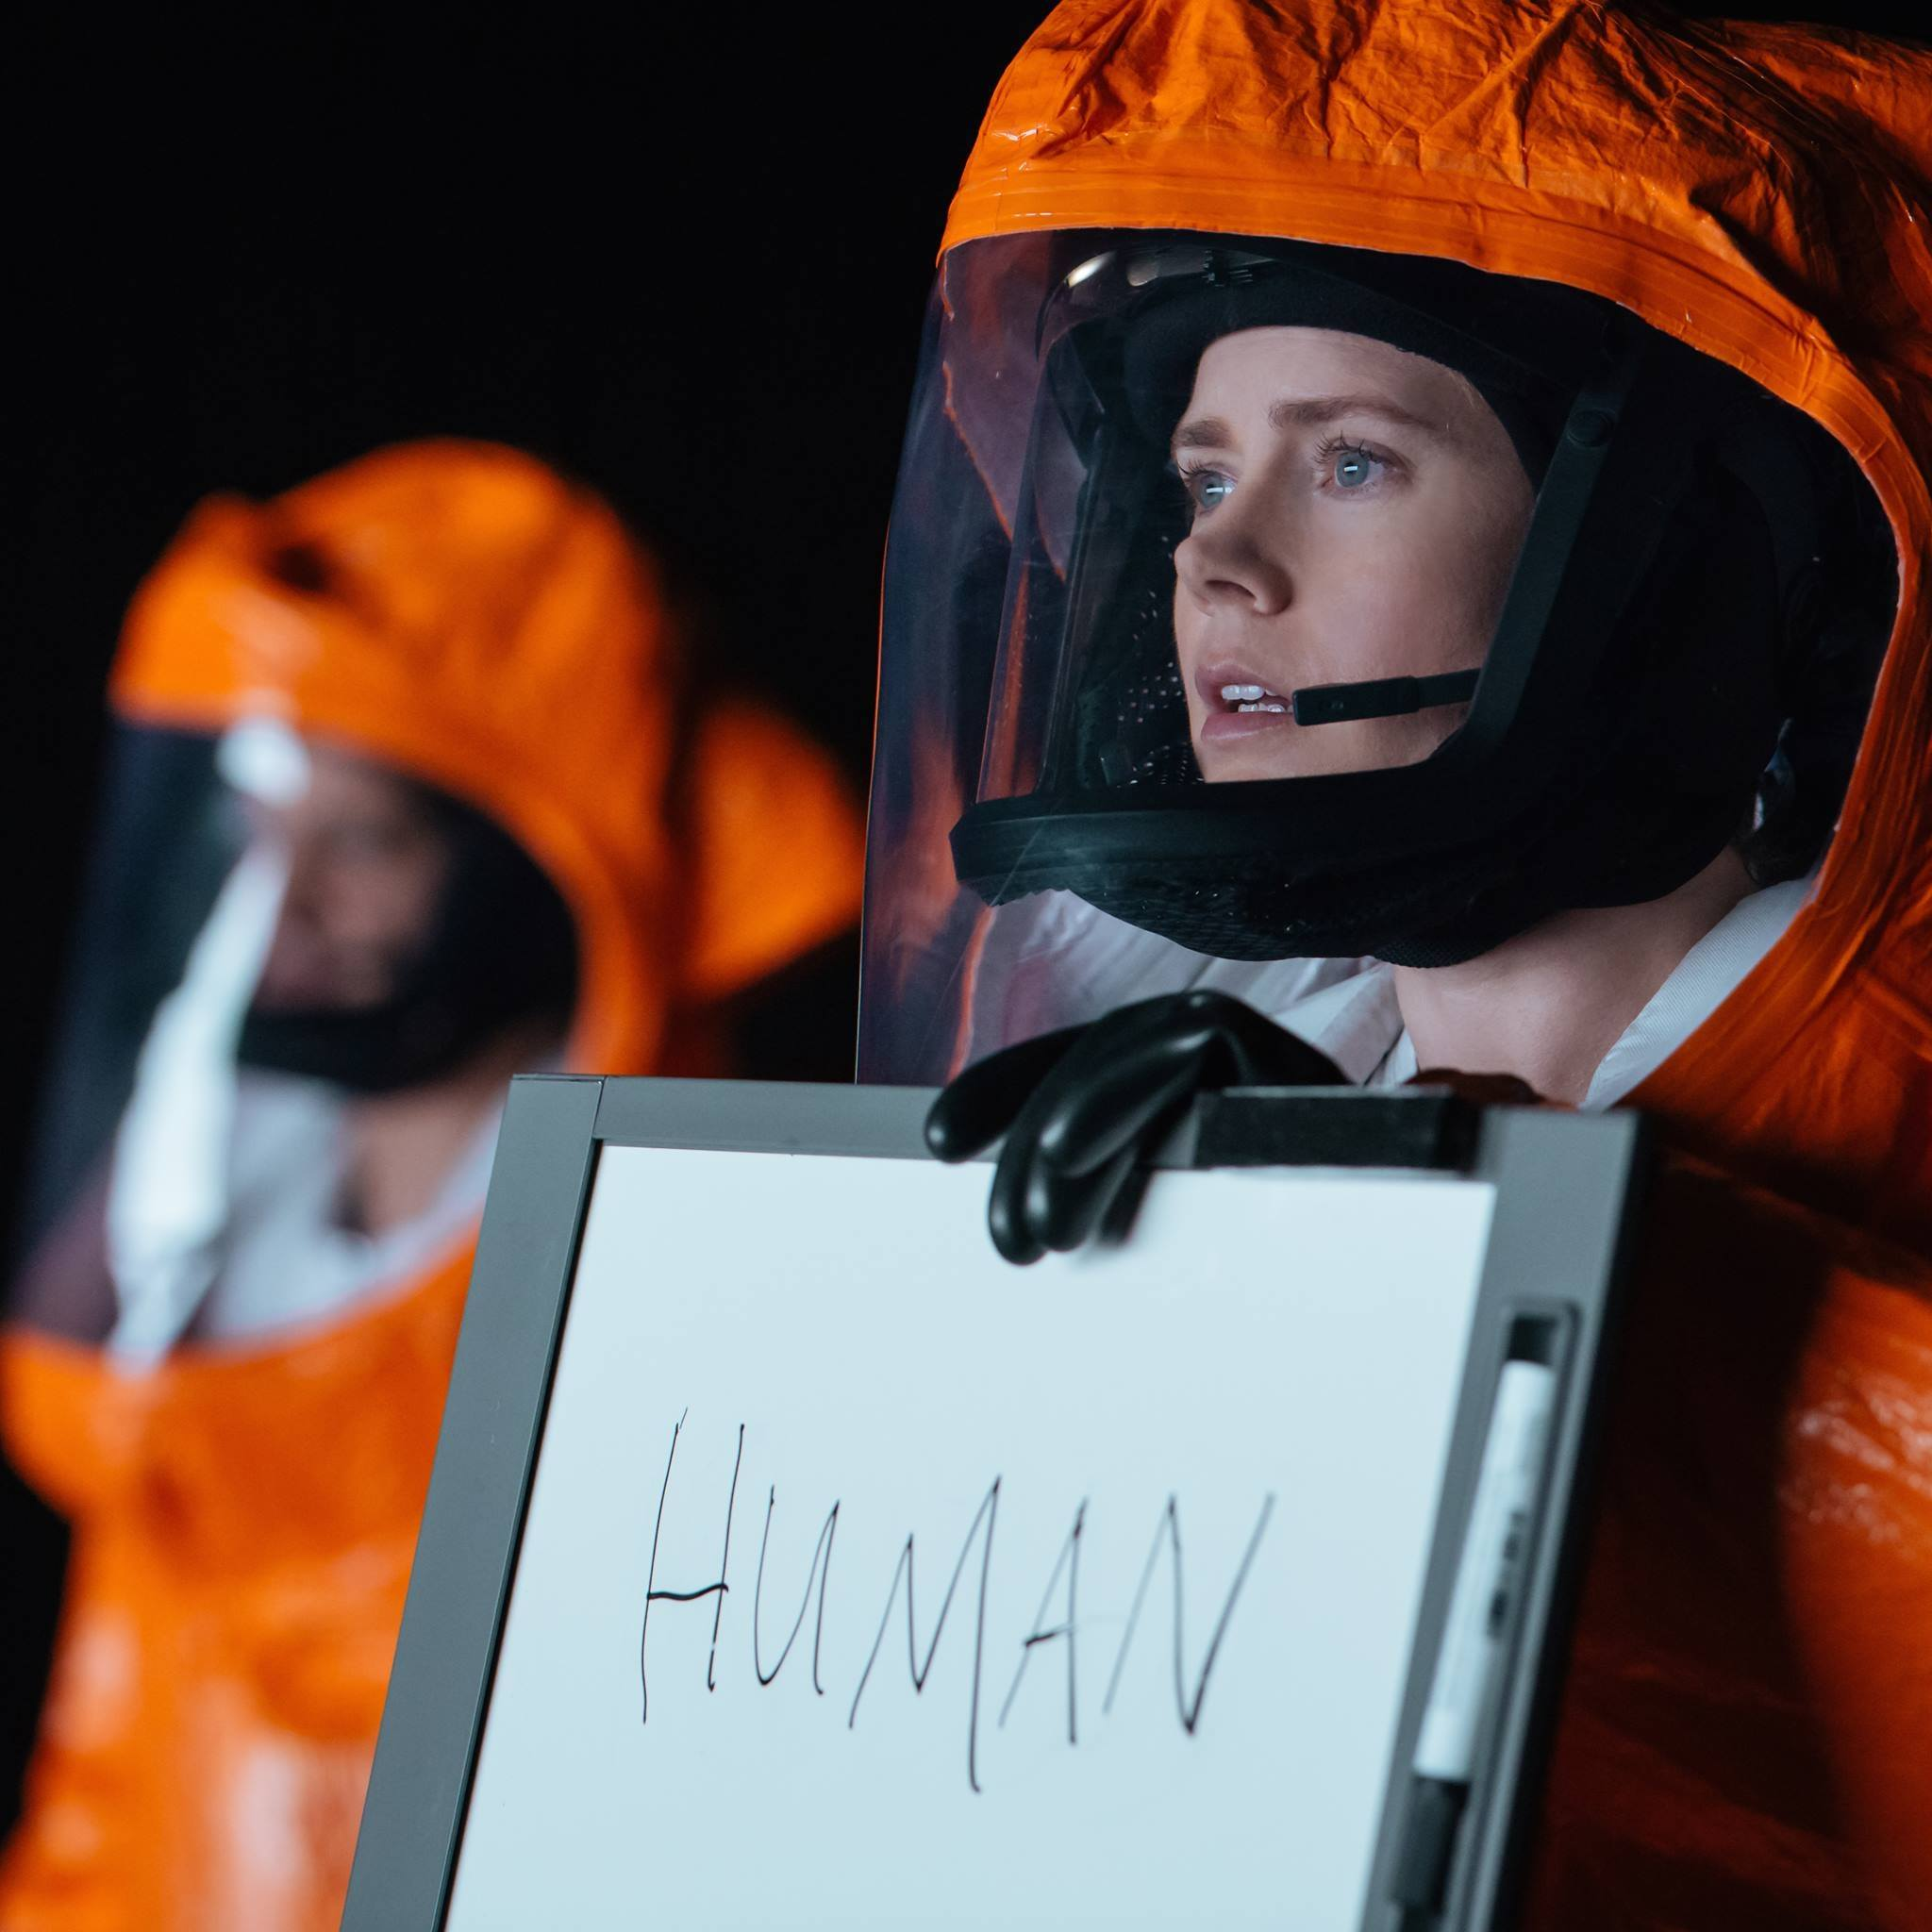 premier-contact-arrival-denis-villeneuve-amy-adams-human